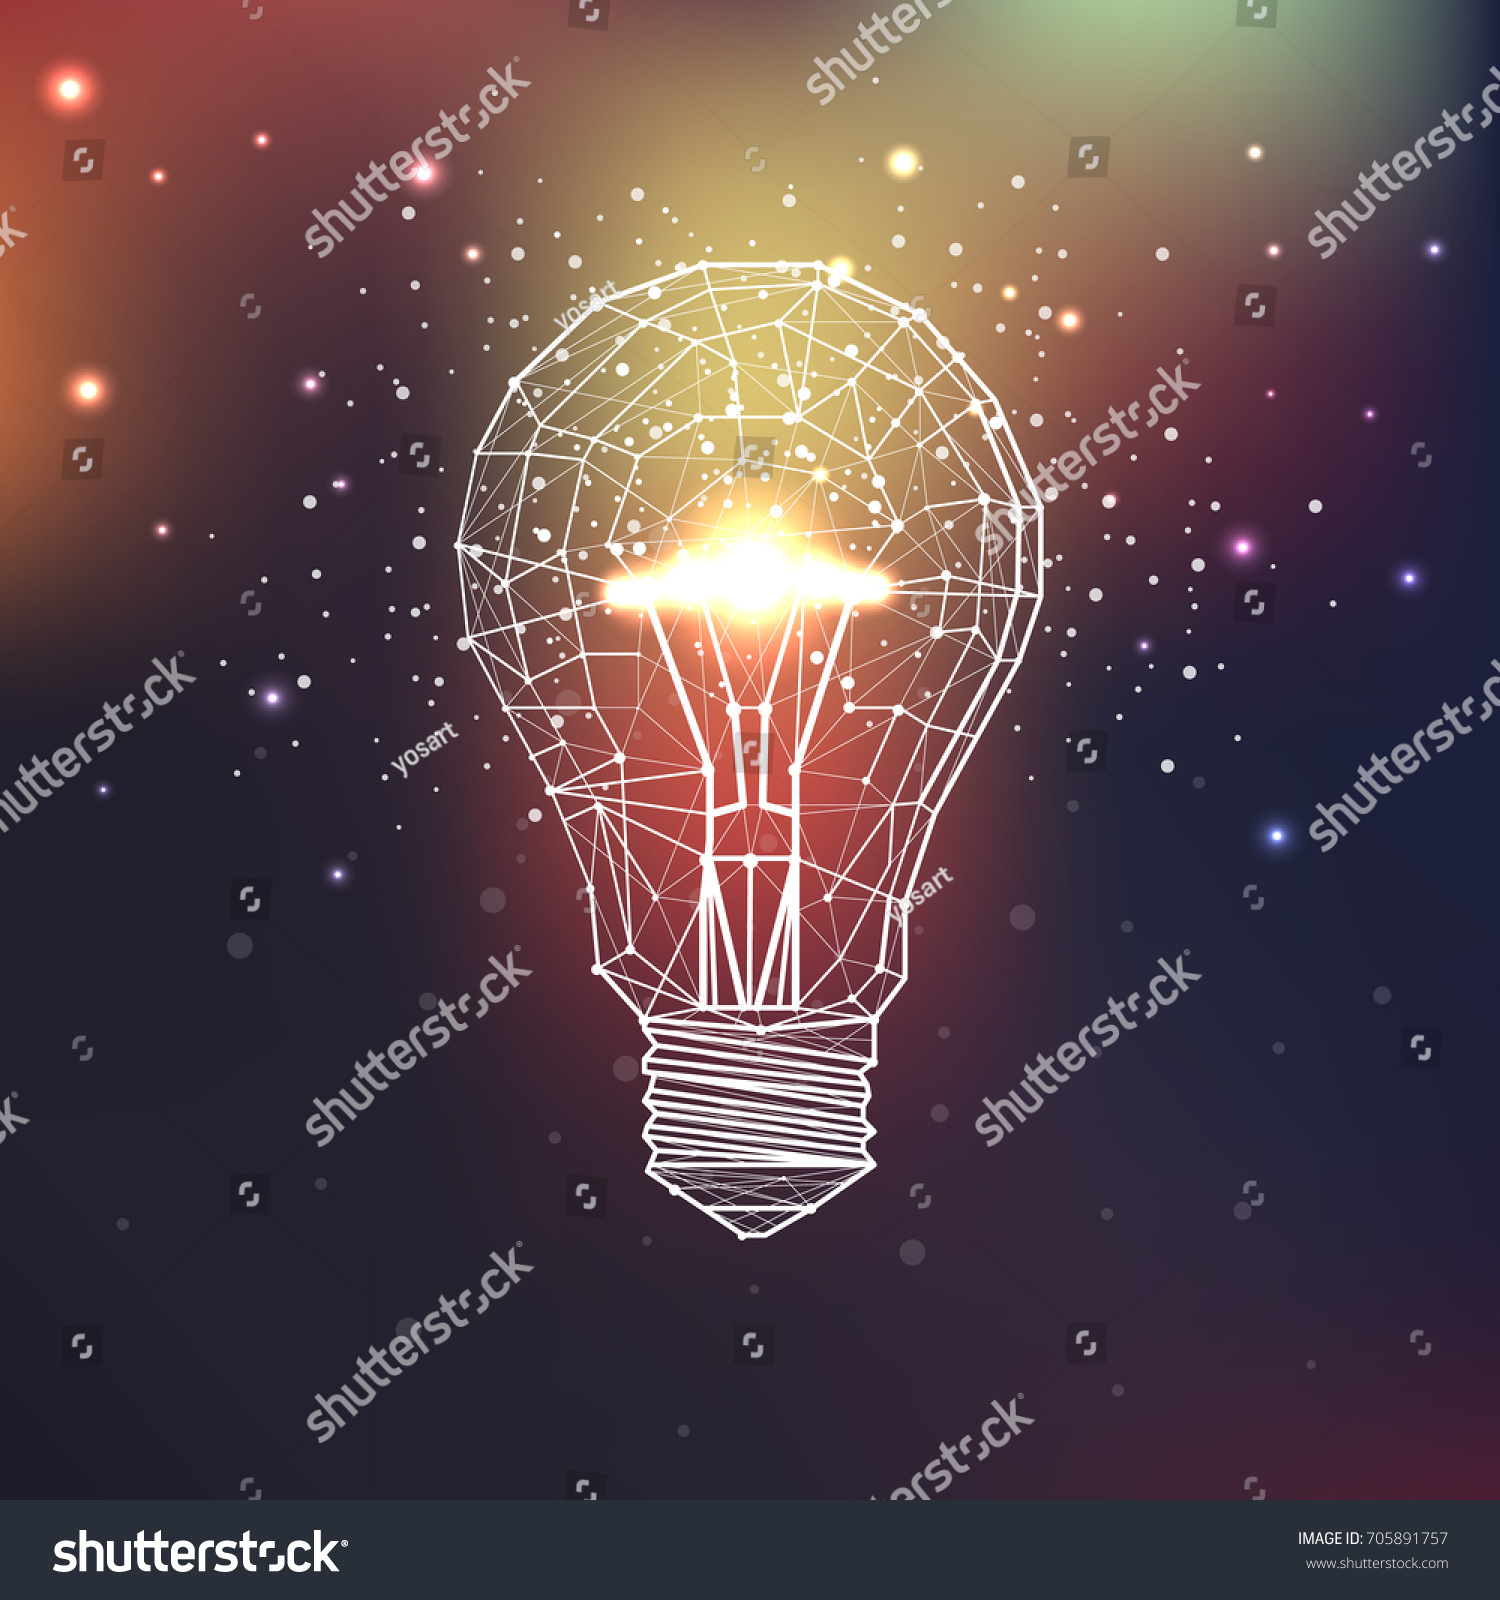 Low Poly Geometric Triangular Wire Graphic Stock Vector 705891757 ...